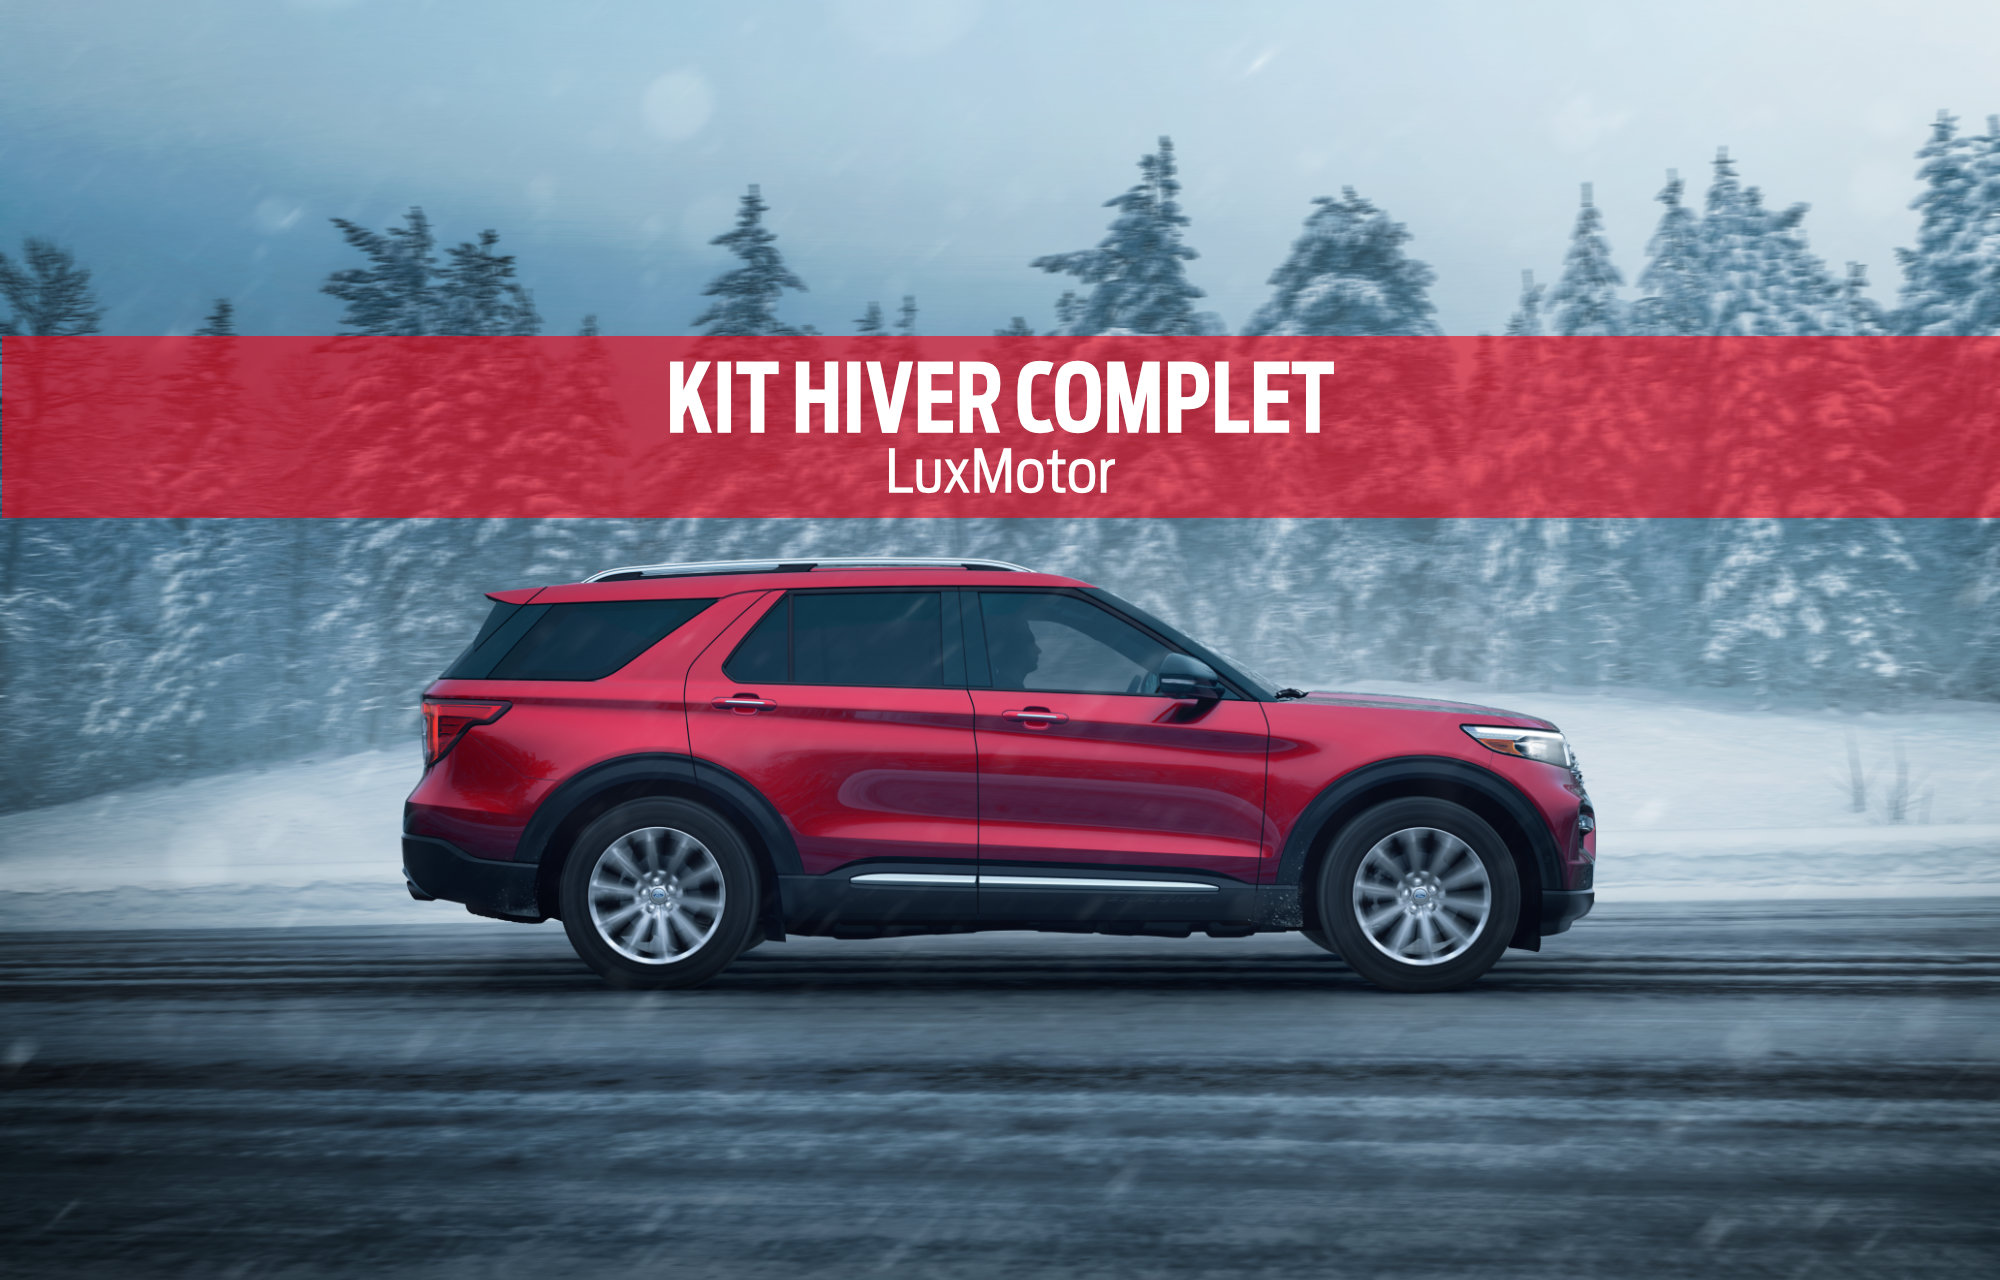 Kit hiver complets LuxMotor